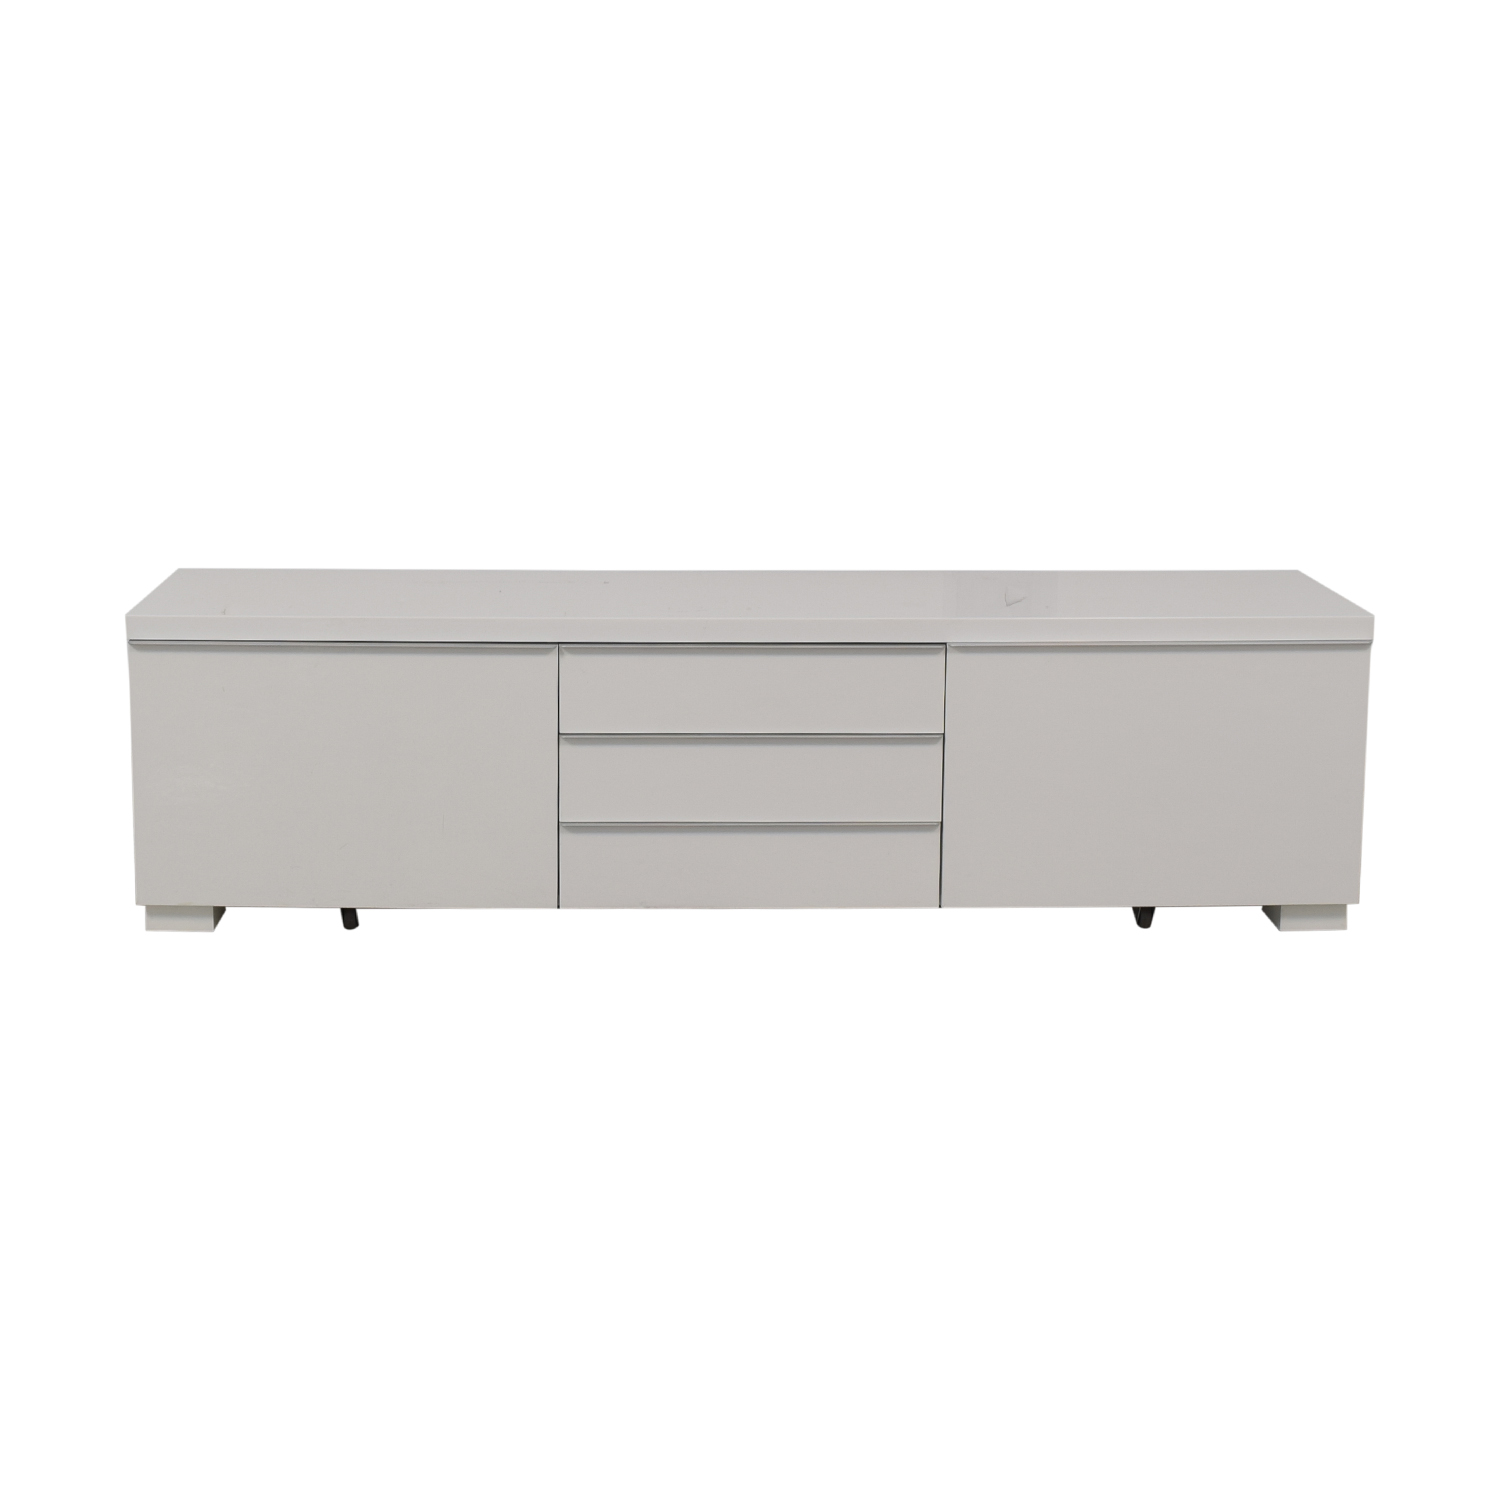 IKEA IKEA Besta Burs TV Unit for sale